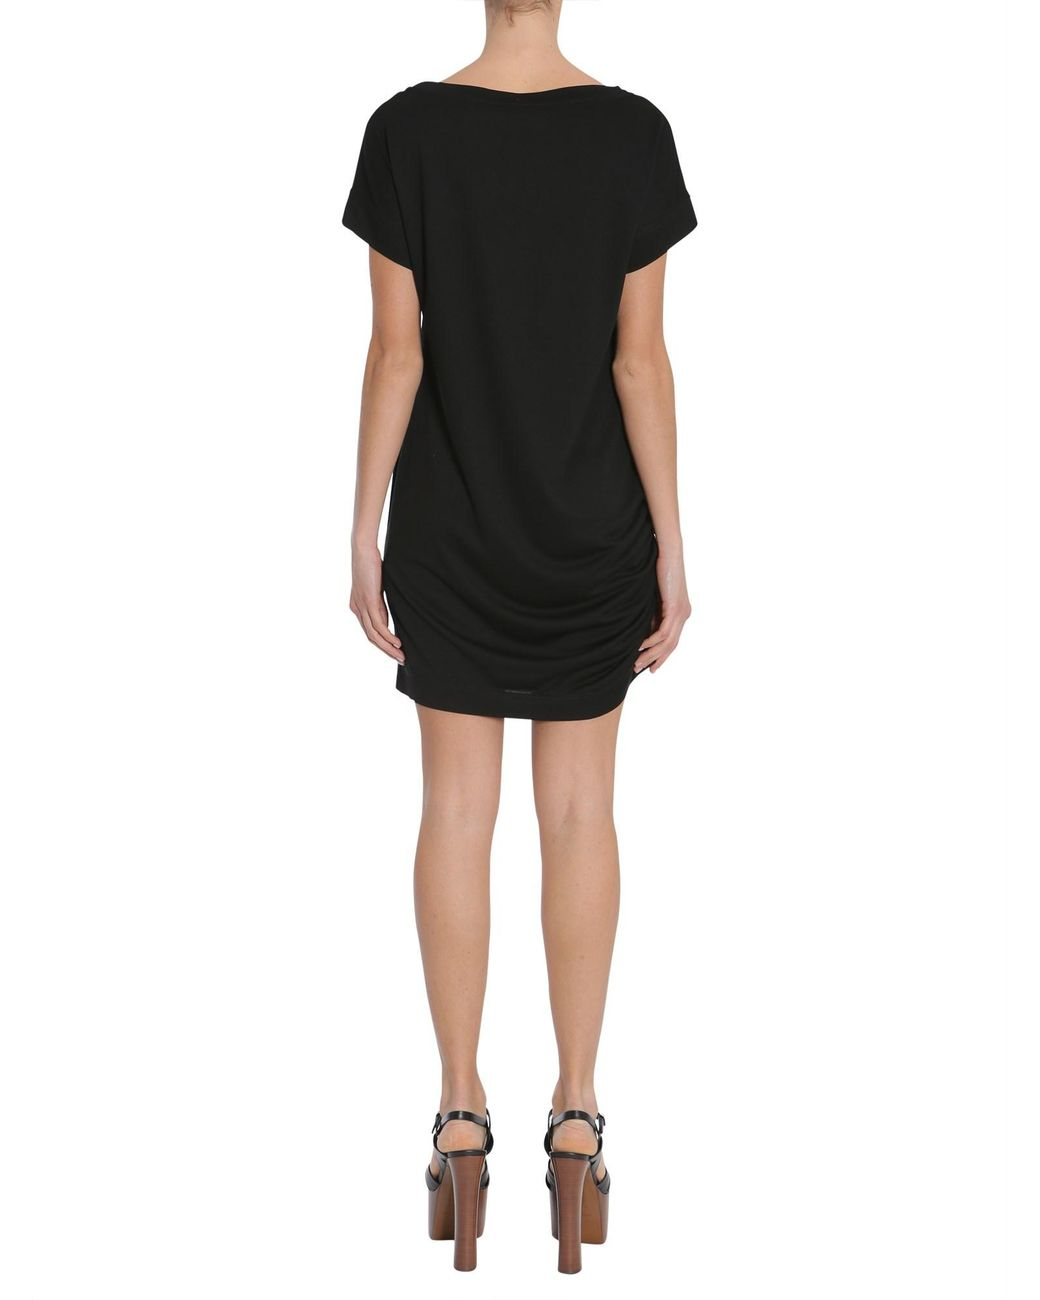 1420597d05389 Lyst - Versace Logo T-shirt Dress in Black - Save 67%